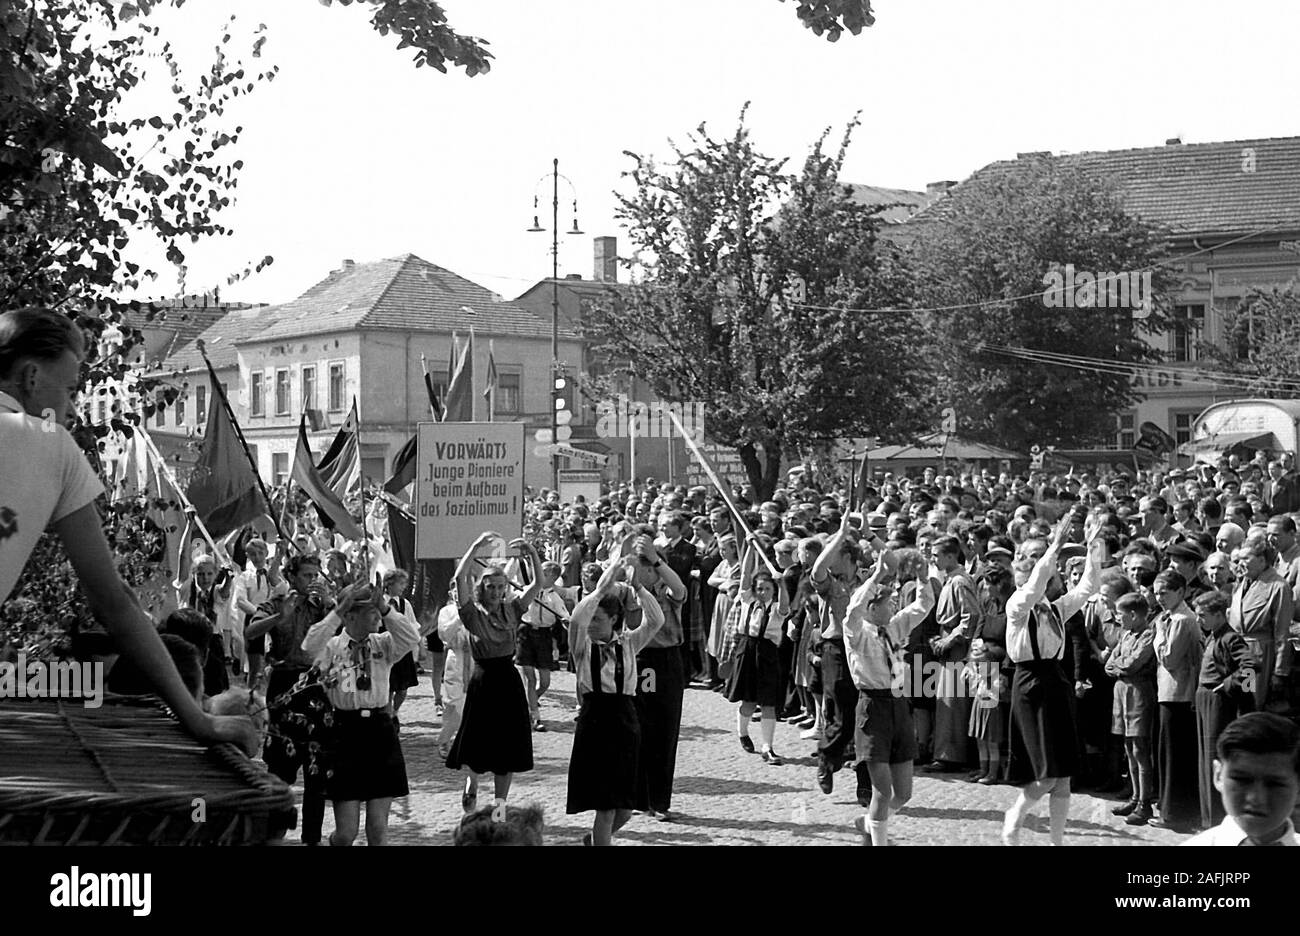 "Young Pioneers dancing with flags and poster (""Vorwaerts, Junge Pioniere beim Aufbau des Sozialismus!"", Go ahead Young Pioneers to create socialism) during a parade in Fuerstenwalde on May 1. Stock Photo"